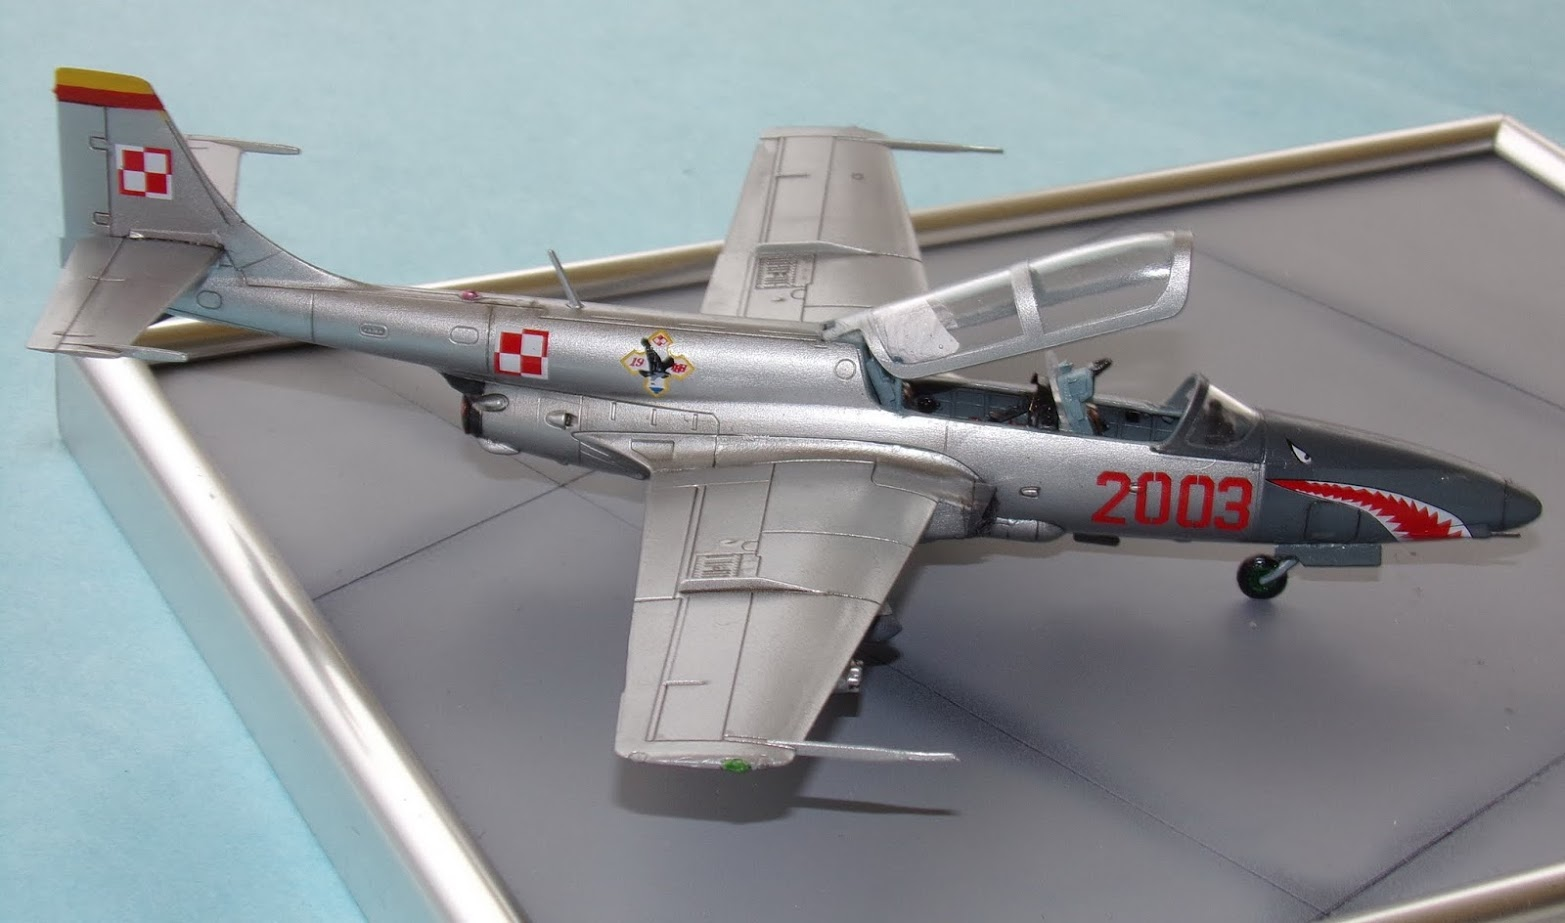 Two built 1/72 scale Iskra plastic kits